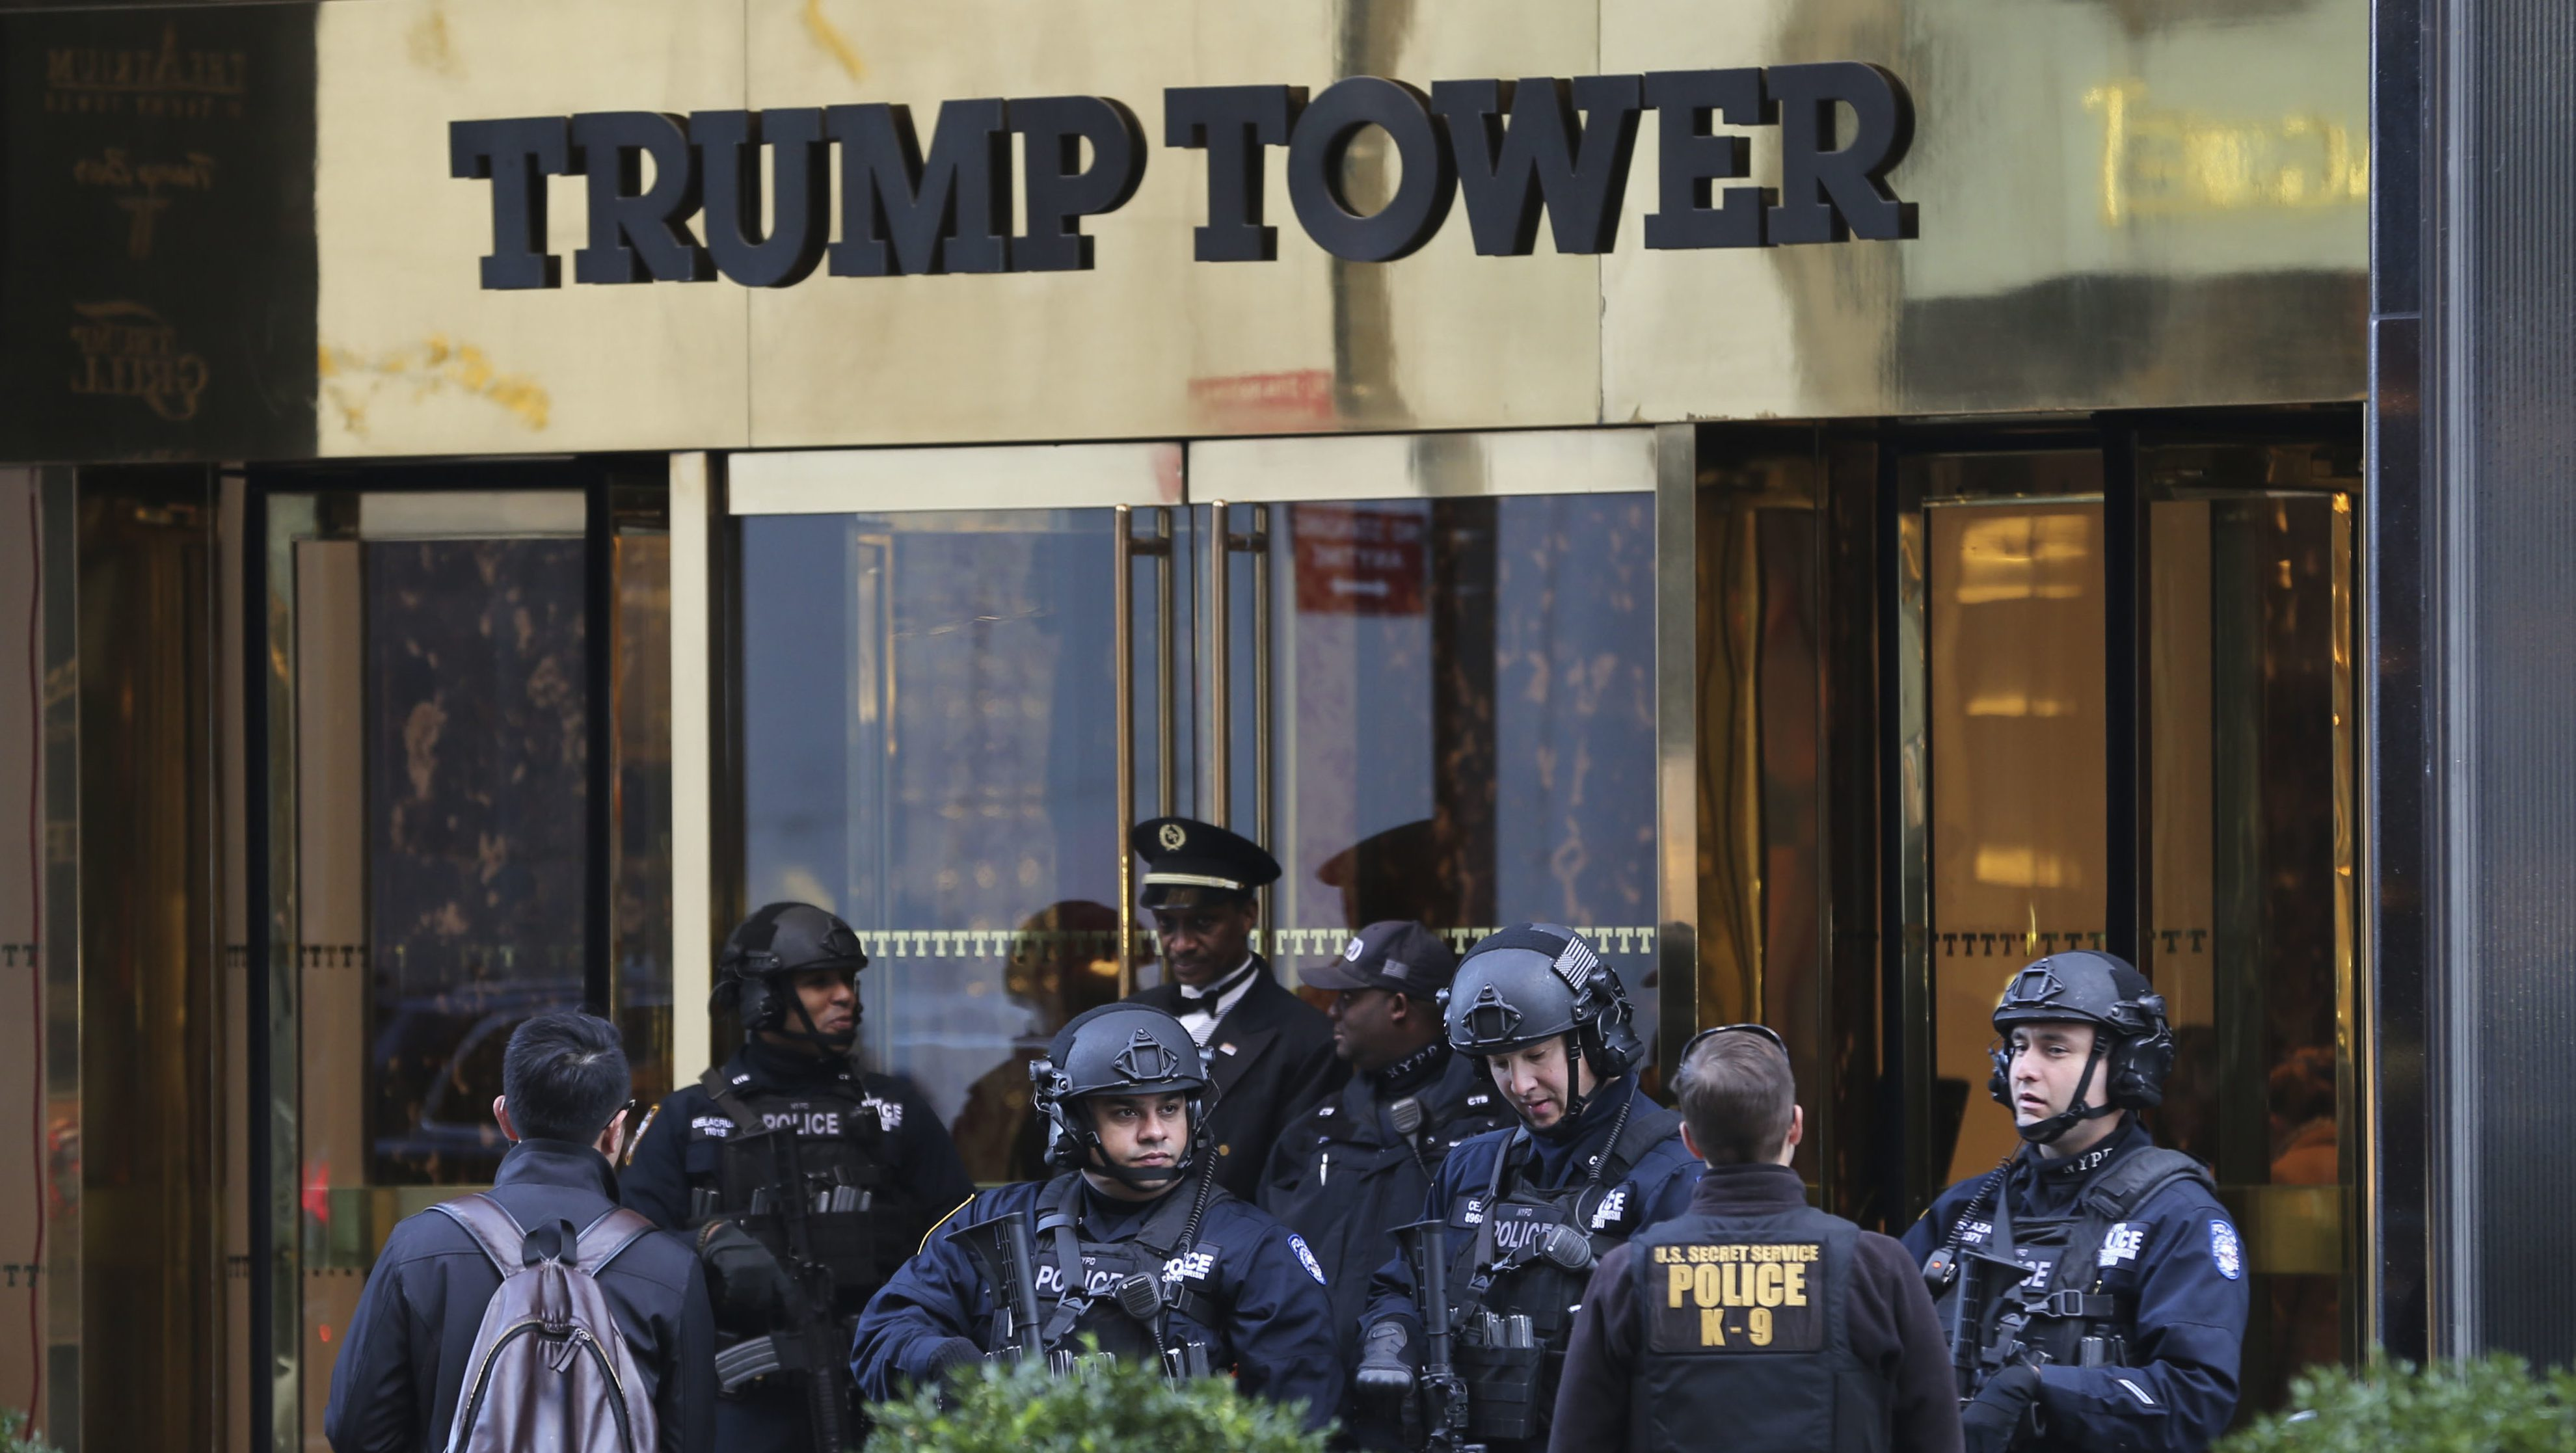 """FILE - In this Nov. 17, 2016 file photo, security personnel stand at the front entrance of Trump Tower in New York. There is no indication that Trump Tower was """"the subject of surveillance"""" by the U.S. government before or after the 2016 election, the top two members of the Senate intelligence committee said Thursday, March 16, 2017, directly contradicting President Donald Trump's claims.""""Based on the information available to us, we see no indications that Trump Tower was the subject of surveillance by any element of the United States government either before or after Election Day 2016,"""" Sens. Richard Burr, R-N.C. and Mark Warner, D-Va., said in a one-sentence joint statement Thursday afternoon. (AP Photo/Seth Wenig, File)"""